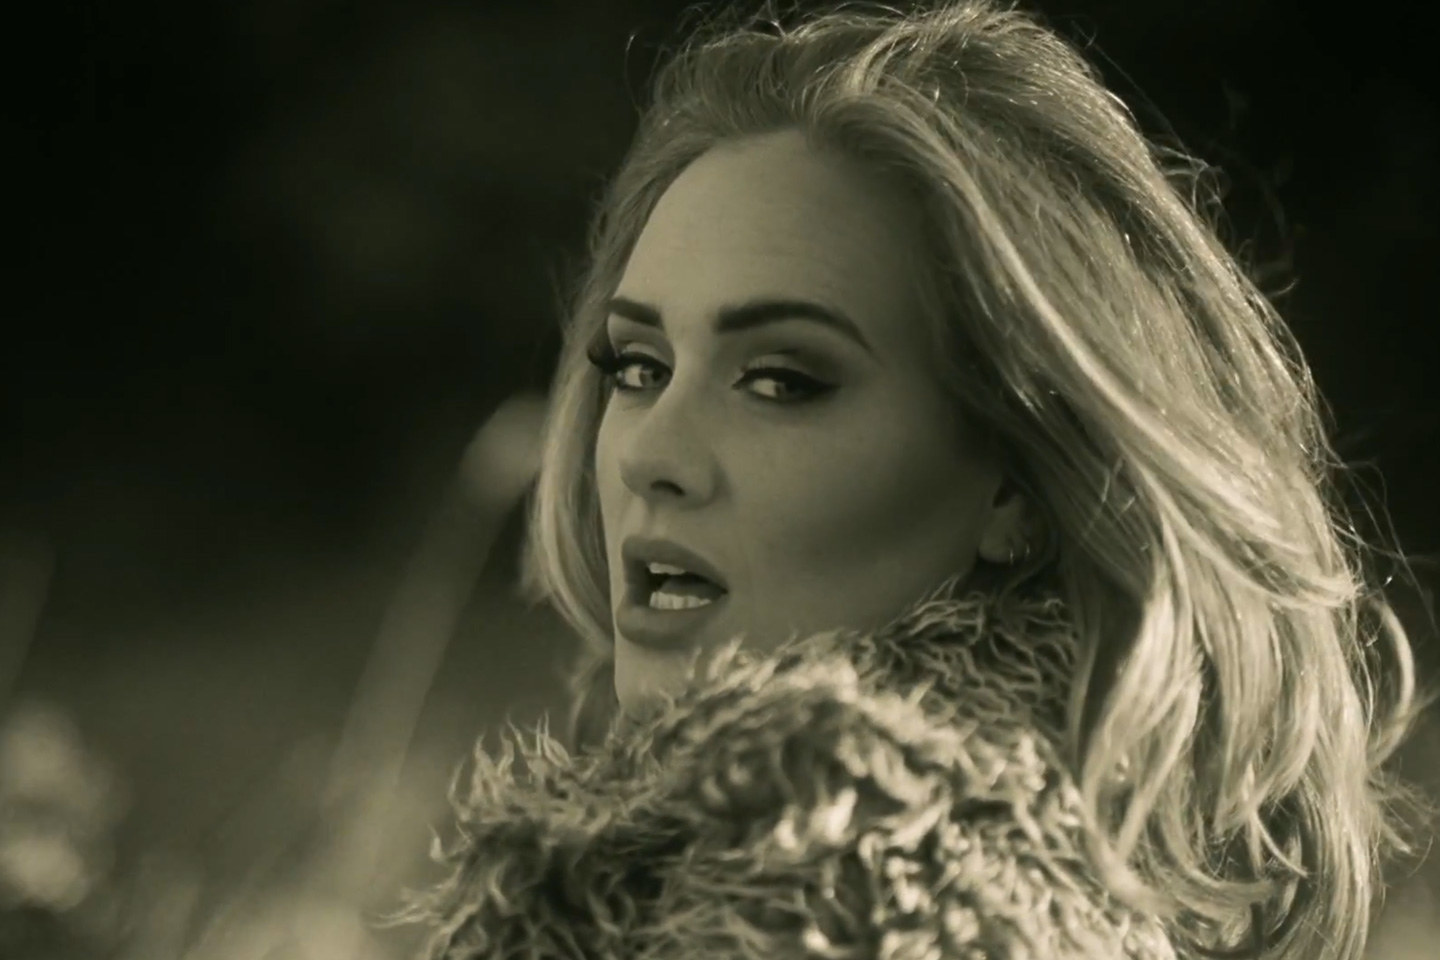 Adele has some words to live by when it comes to body image